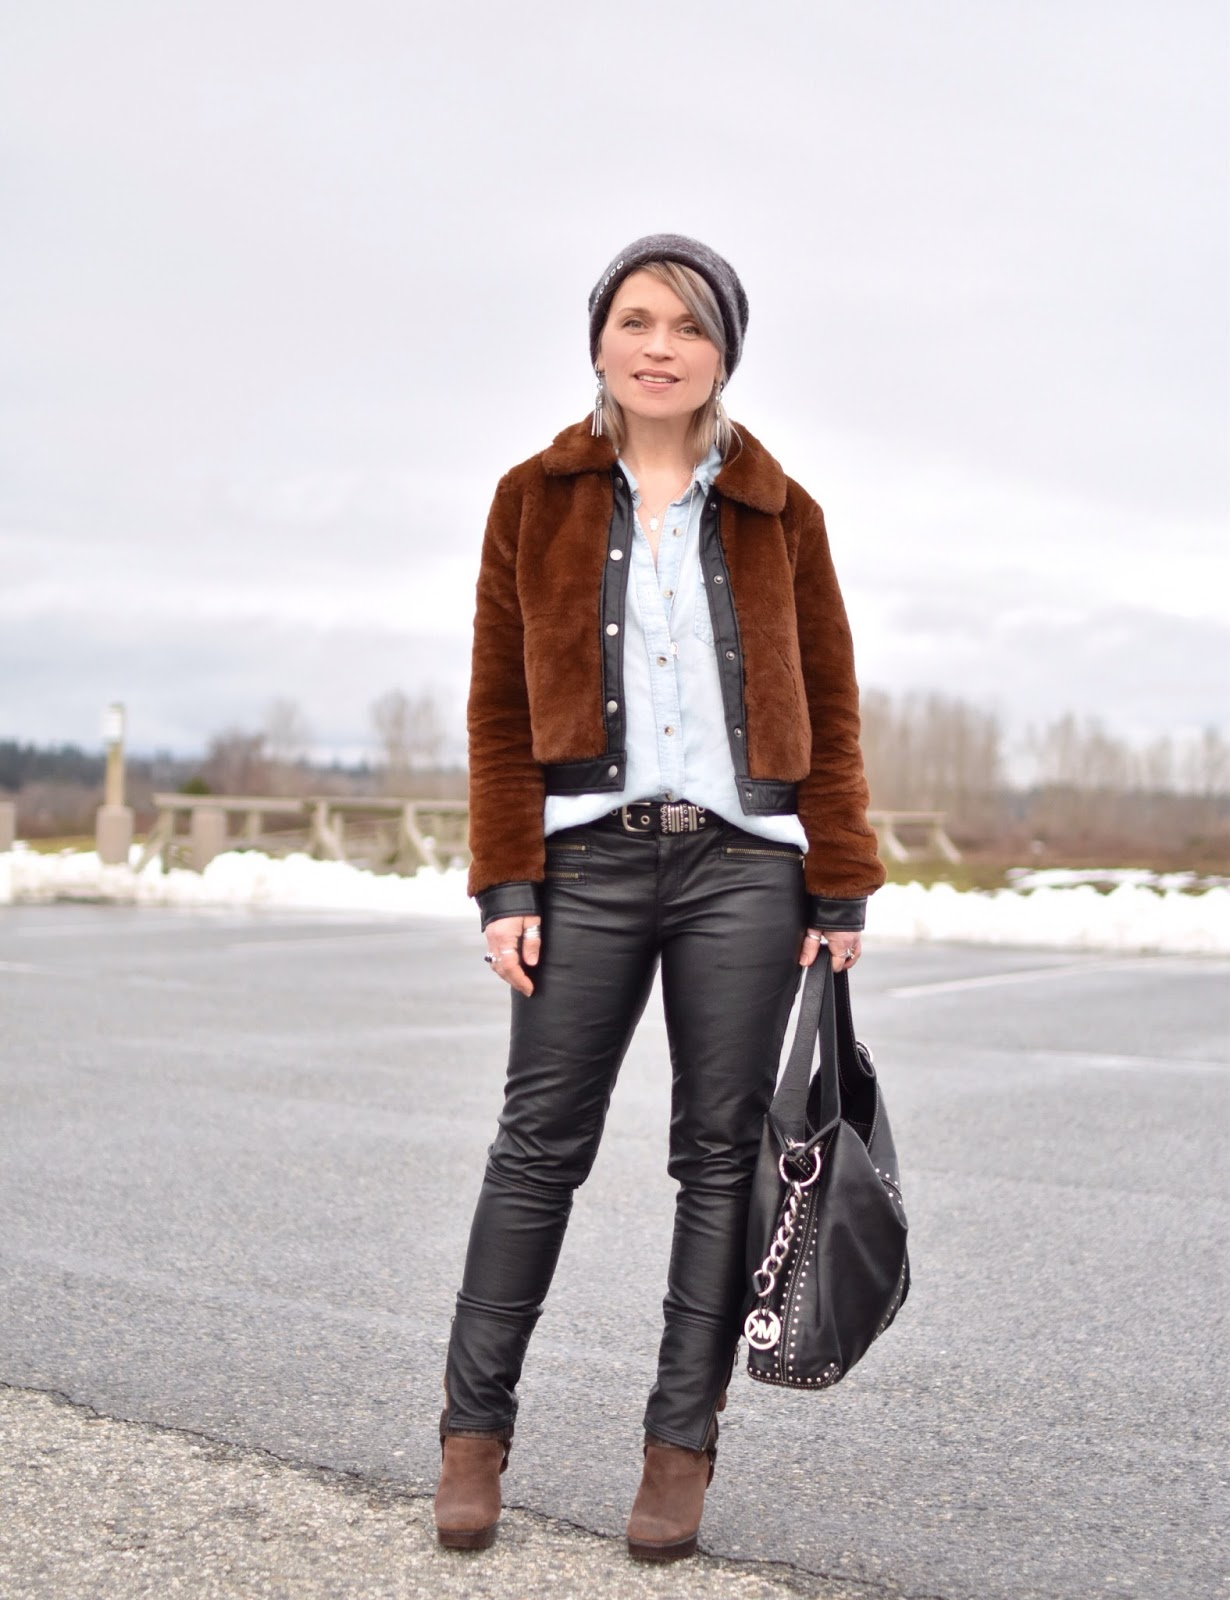 Monika Faulkner outfit inspiration - styling a chambray shirt and vegan leather jeans with a furry bomber, harness boots, and woolen beanie